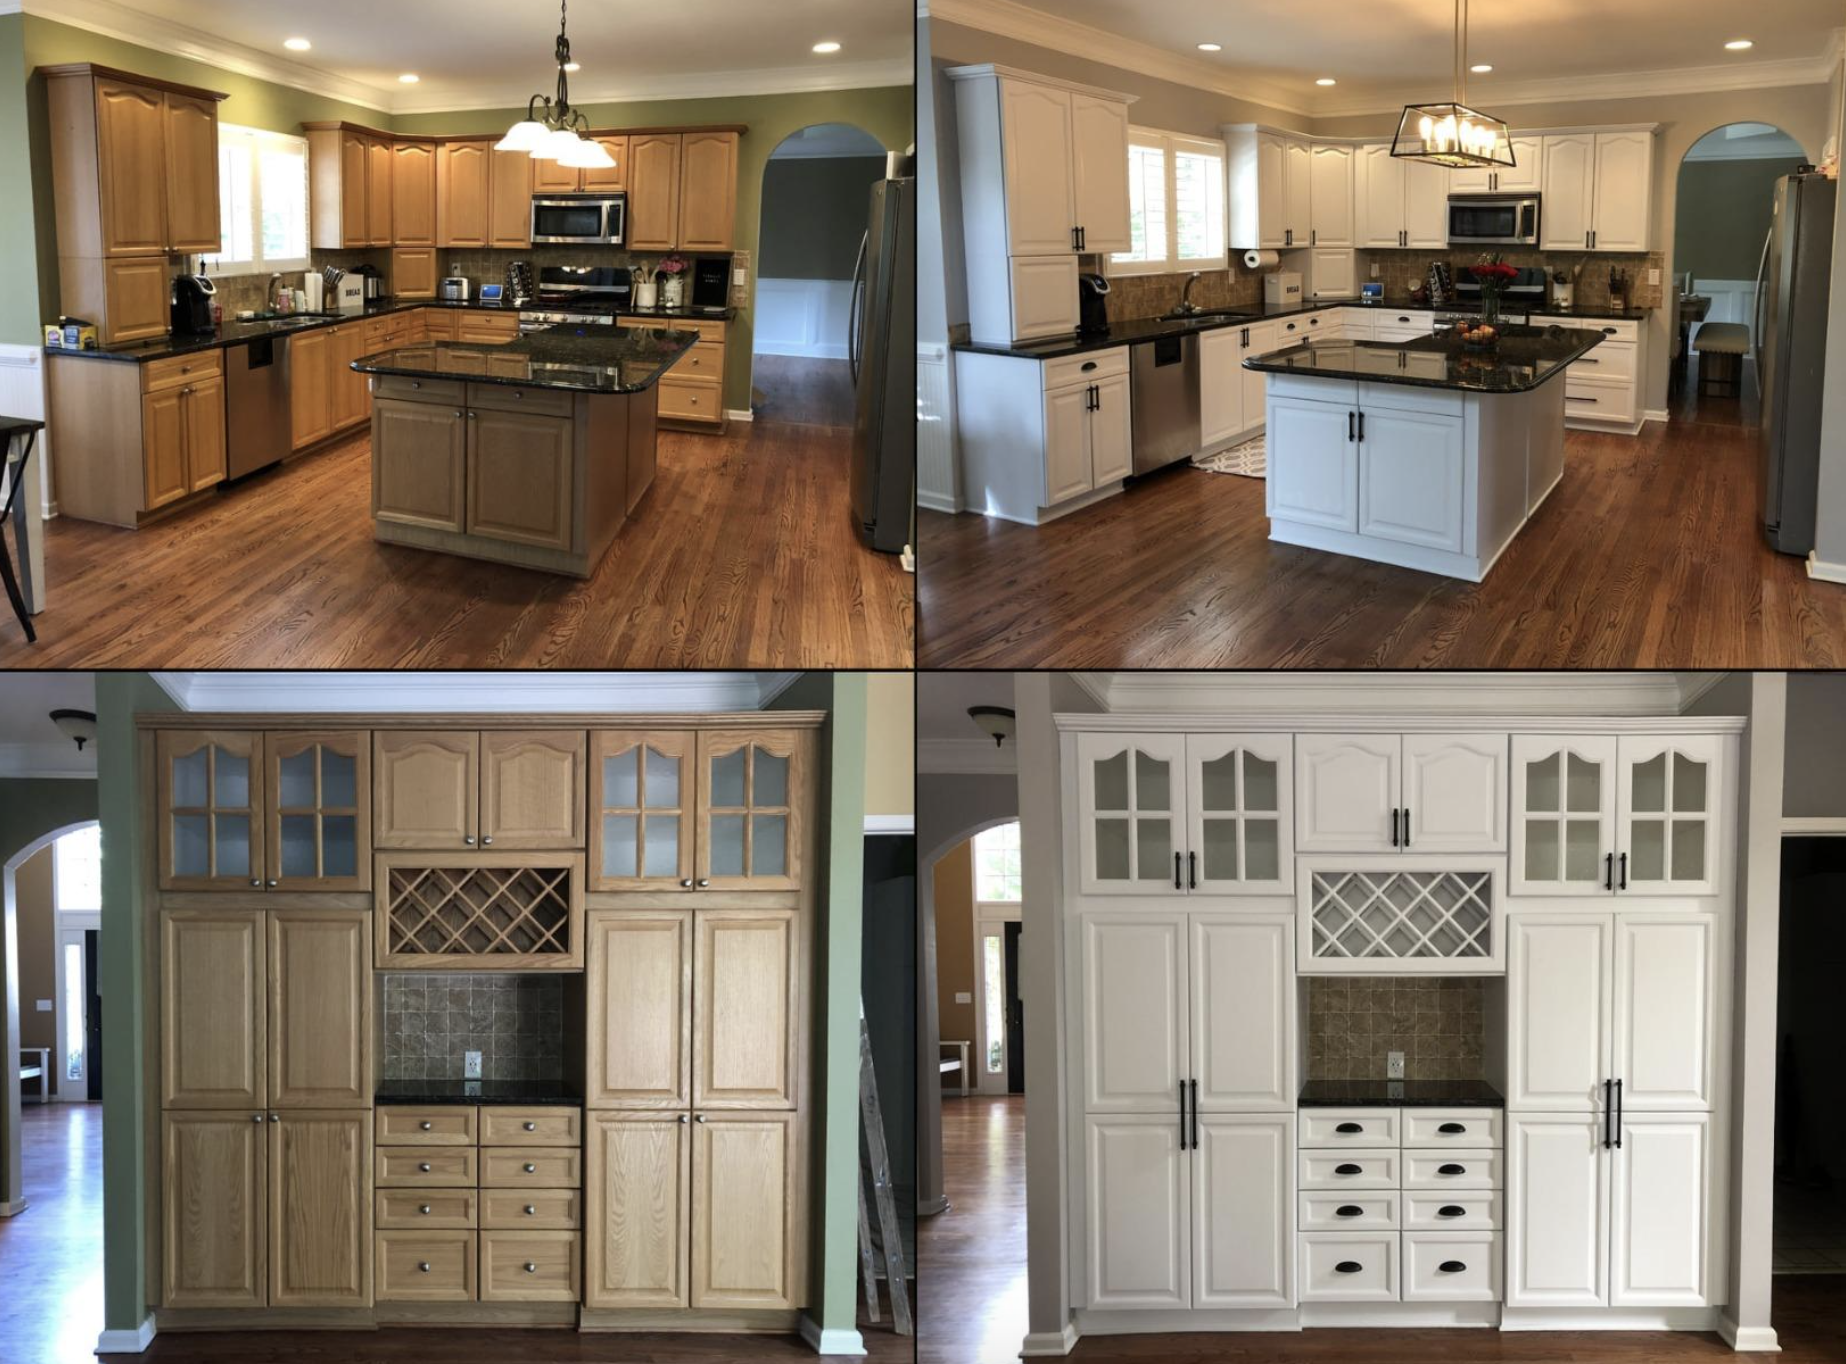 A before and after customer review photo of their wood cabinets painted white